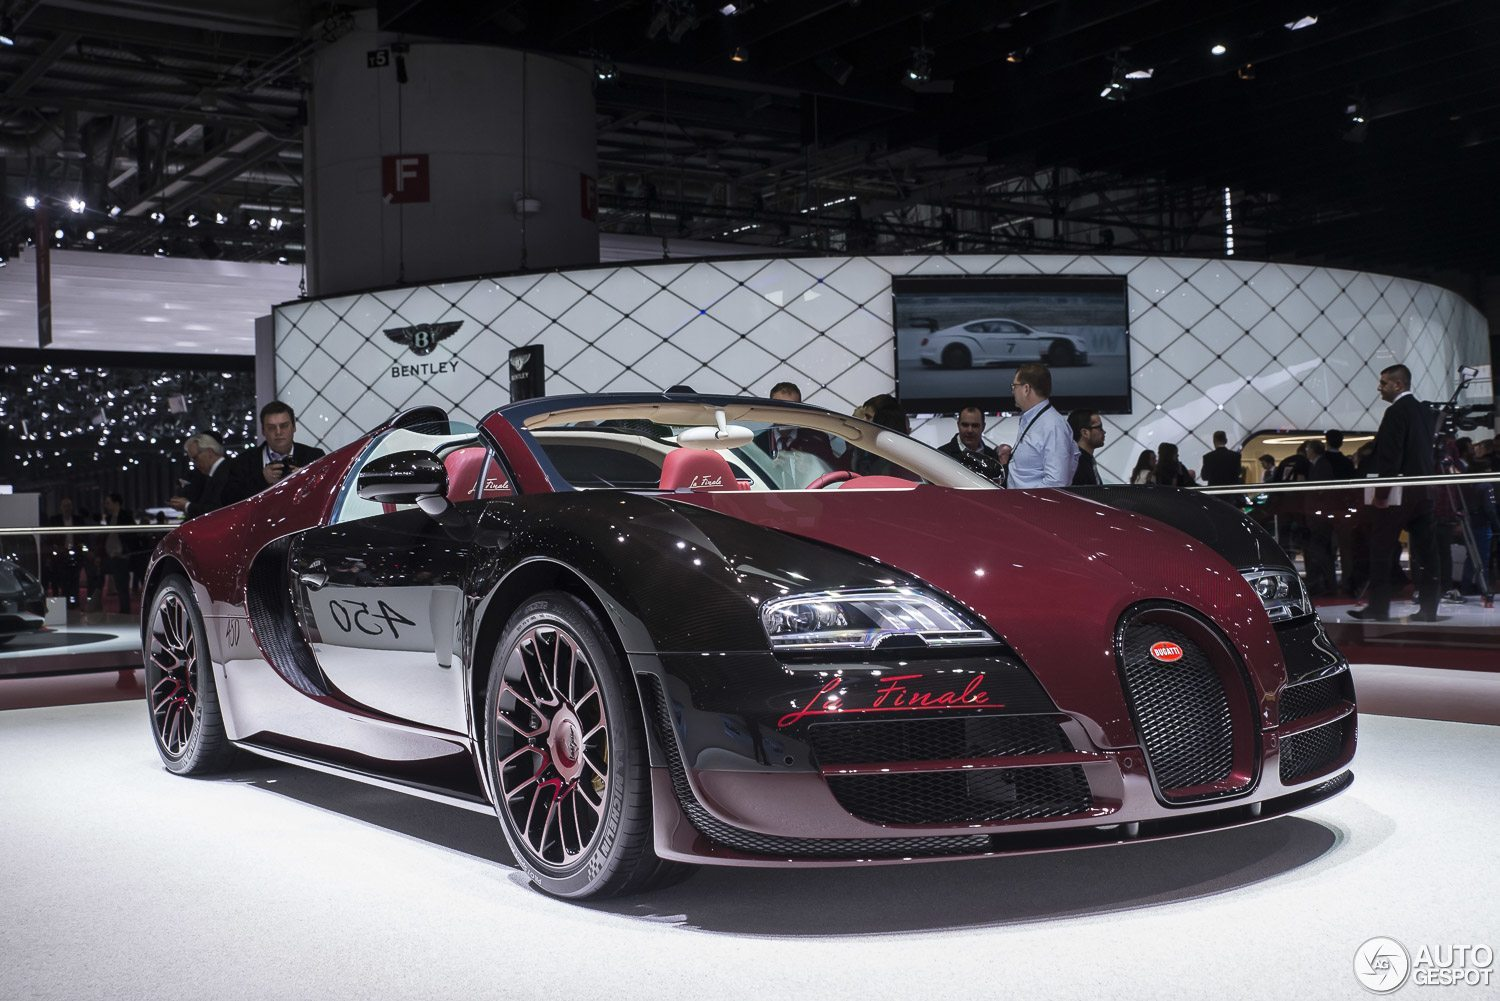 geneva motor show bugatti veyron grand sport vitesse la finale hartvooraut. Black Bedroom Furniture Sets. Home Design Ideas